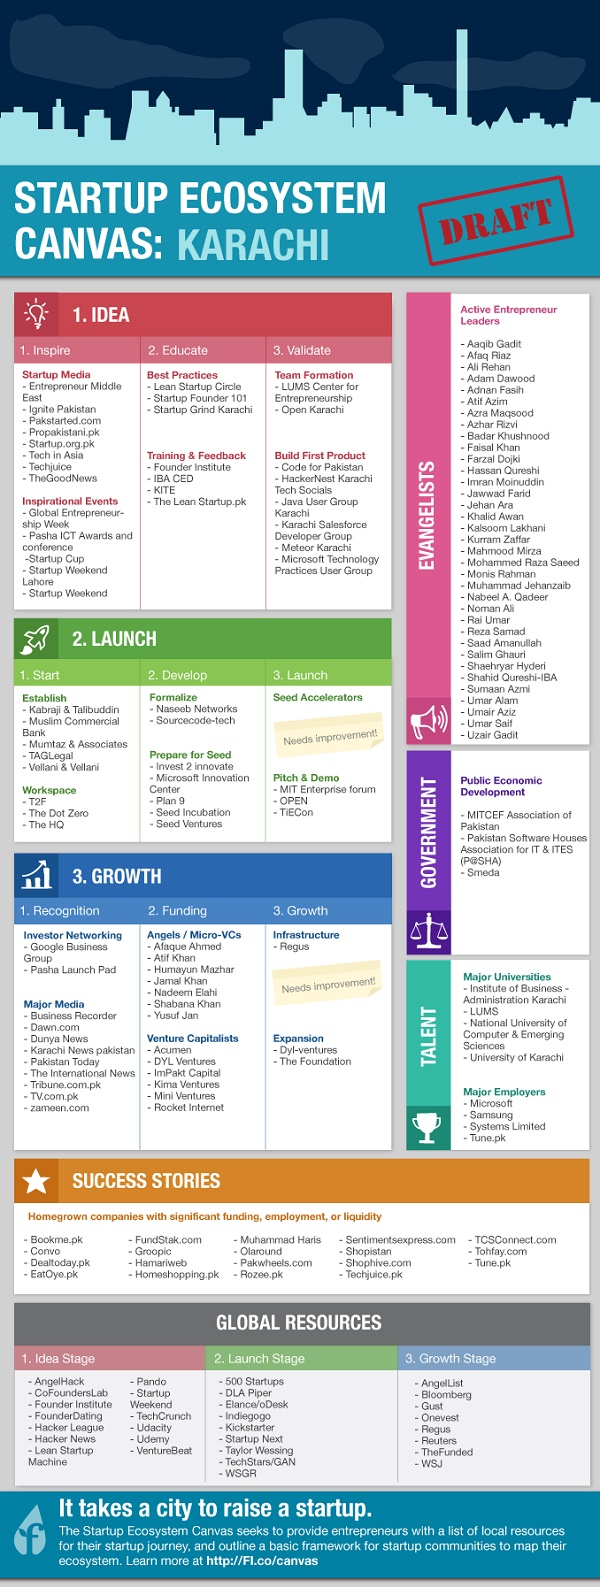 Karachi Founder Institute Posts Startups Infographic